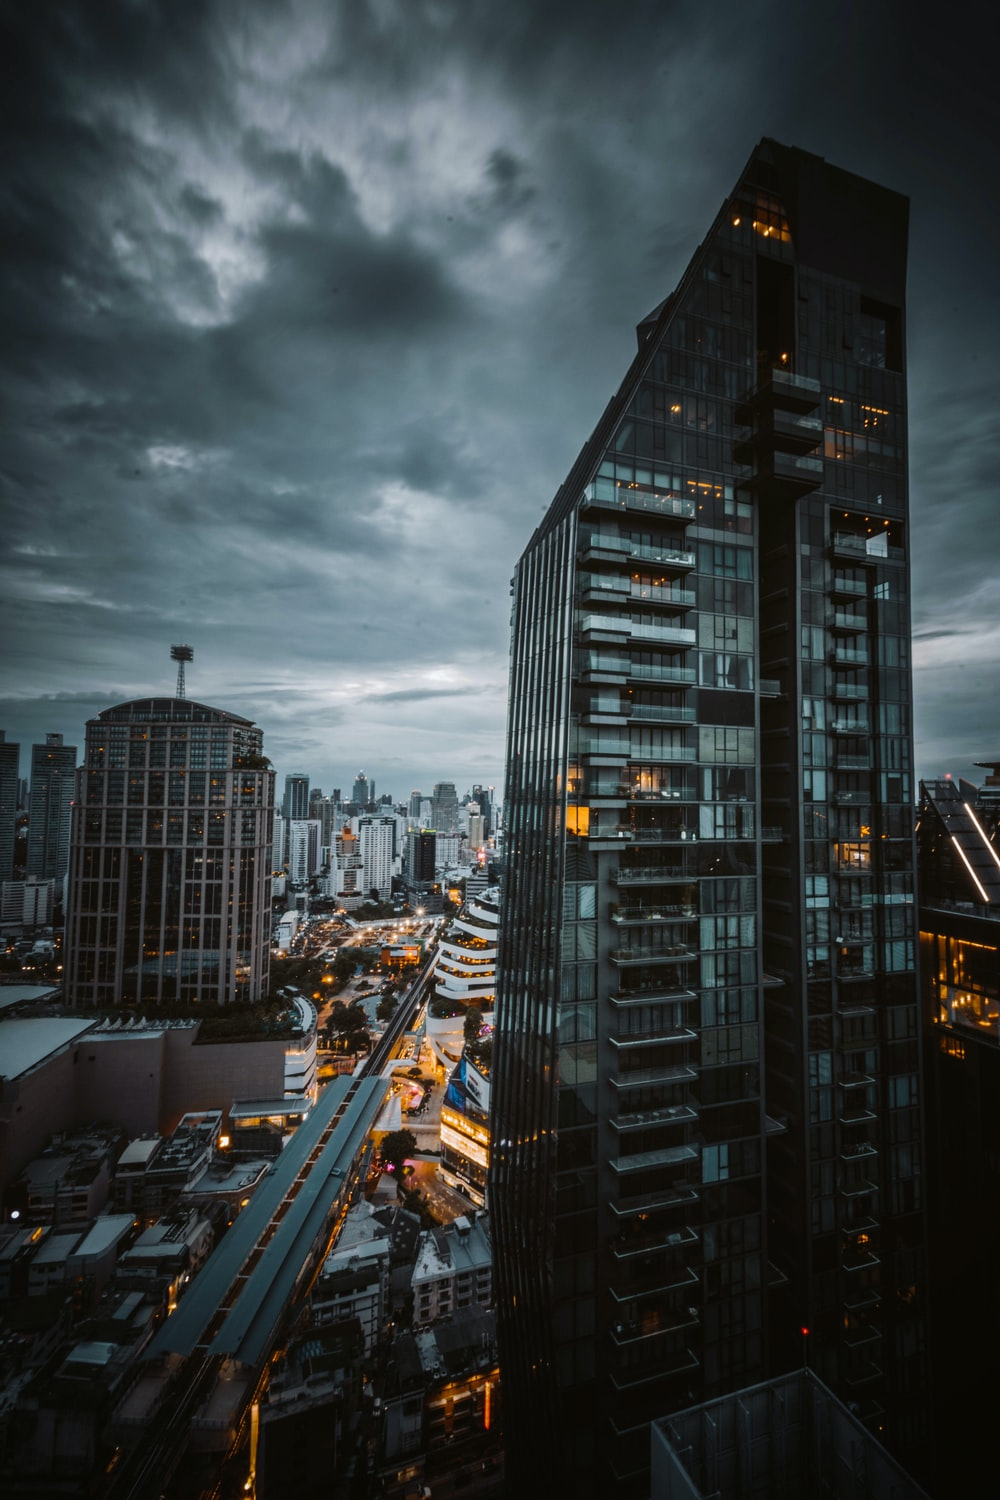 city buildings under gray cloudy sky during daytime